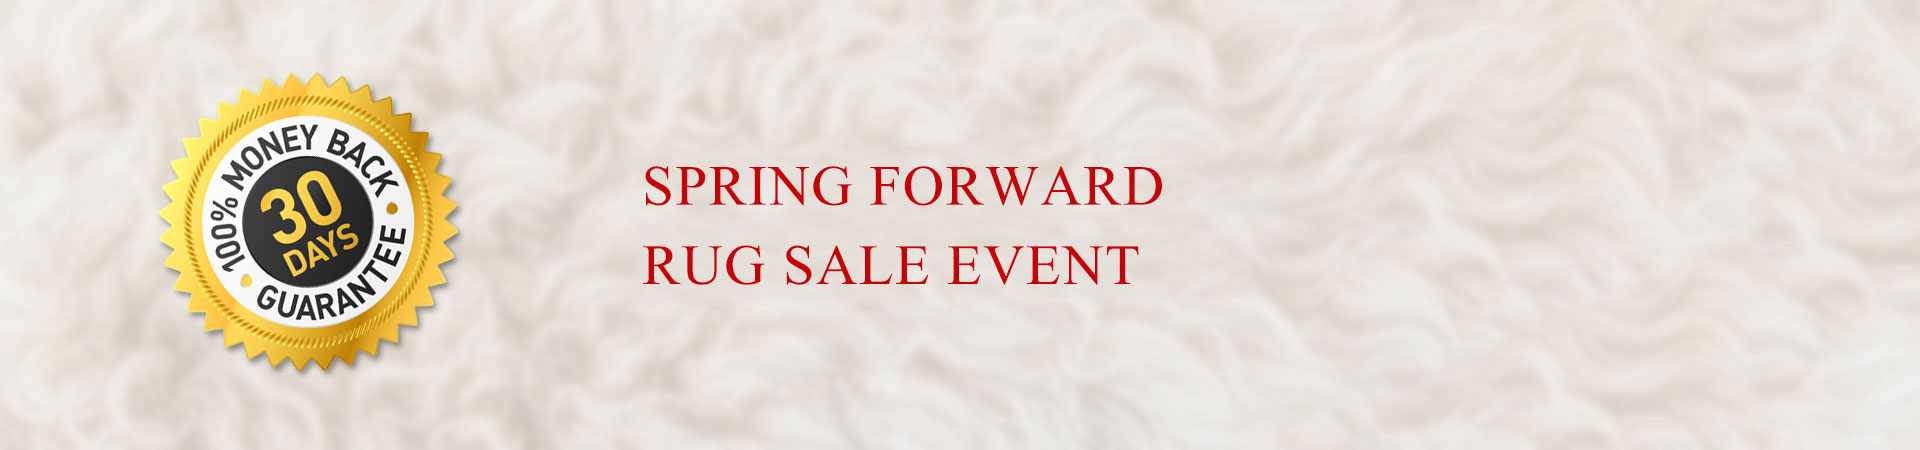 SPRING FORWARD RUG SALE EVENT